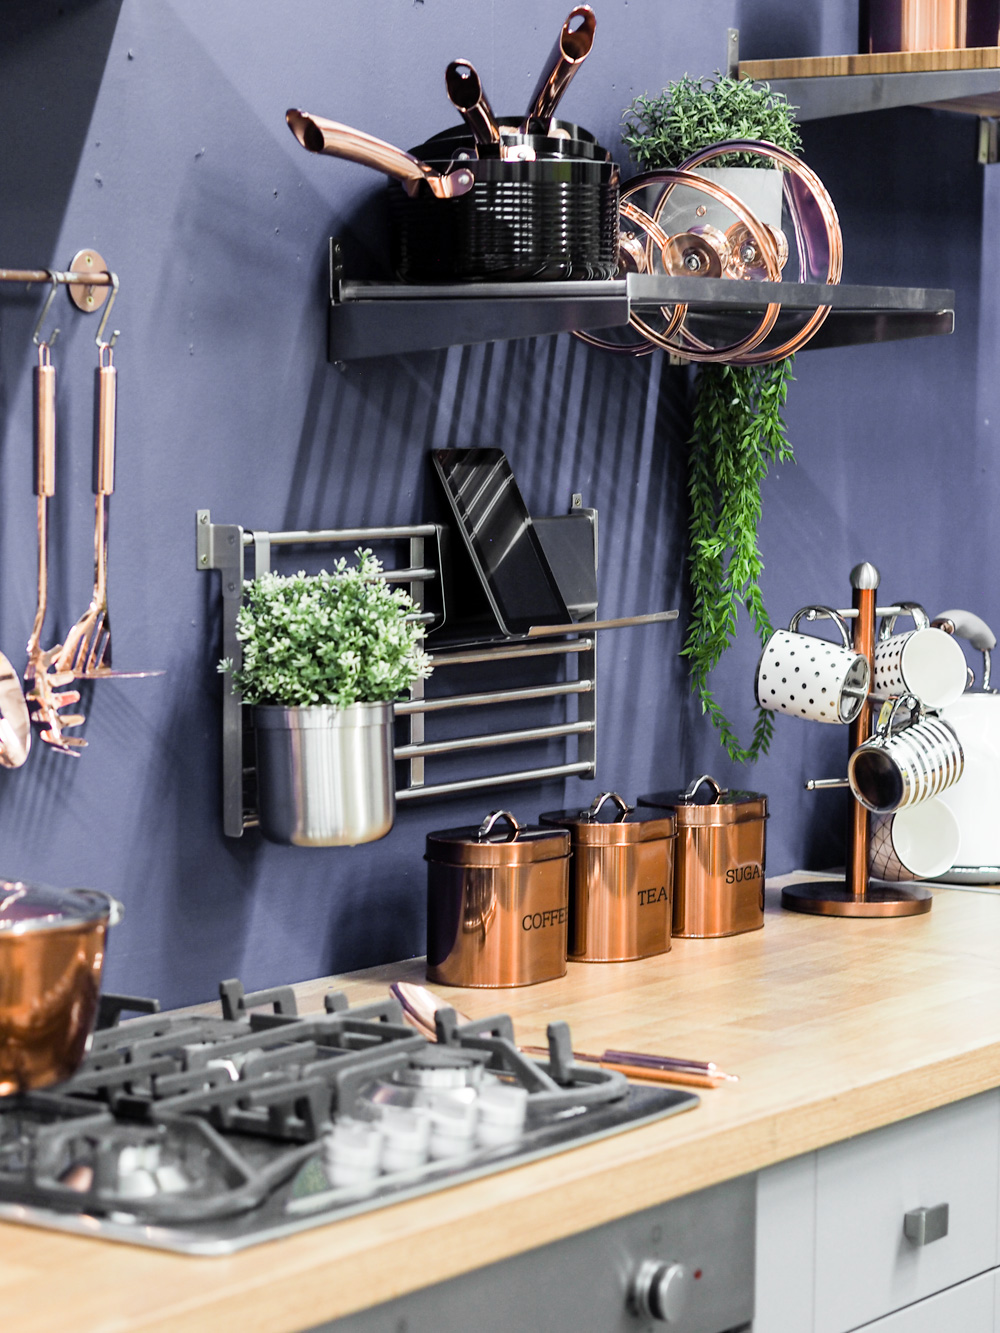 Copper and blue kitchen inspiration from Studio.co.uk, the home of affordable interiors